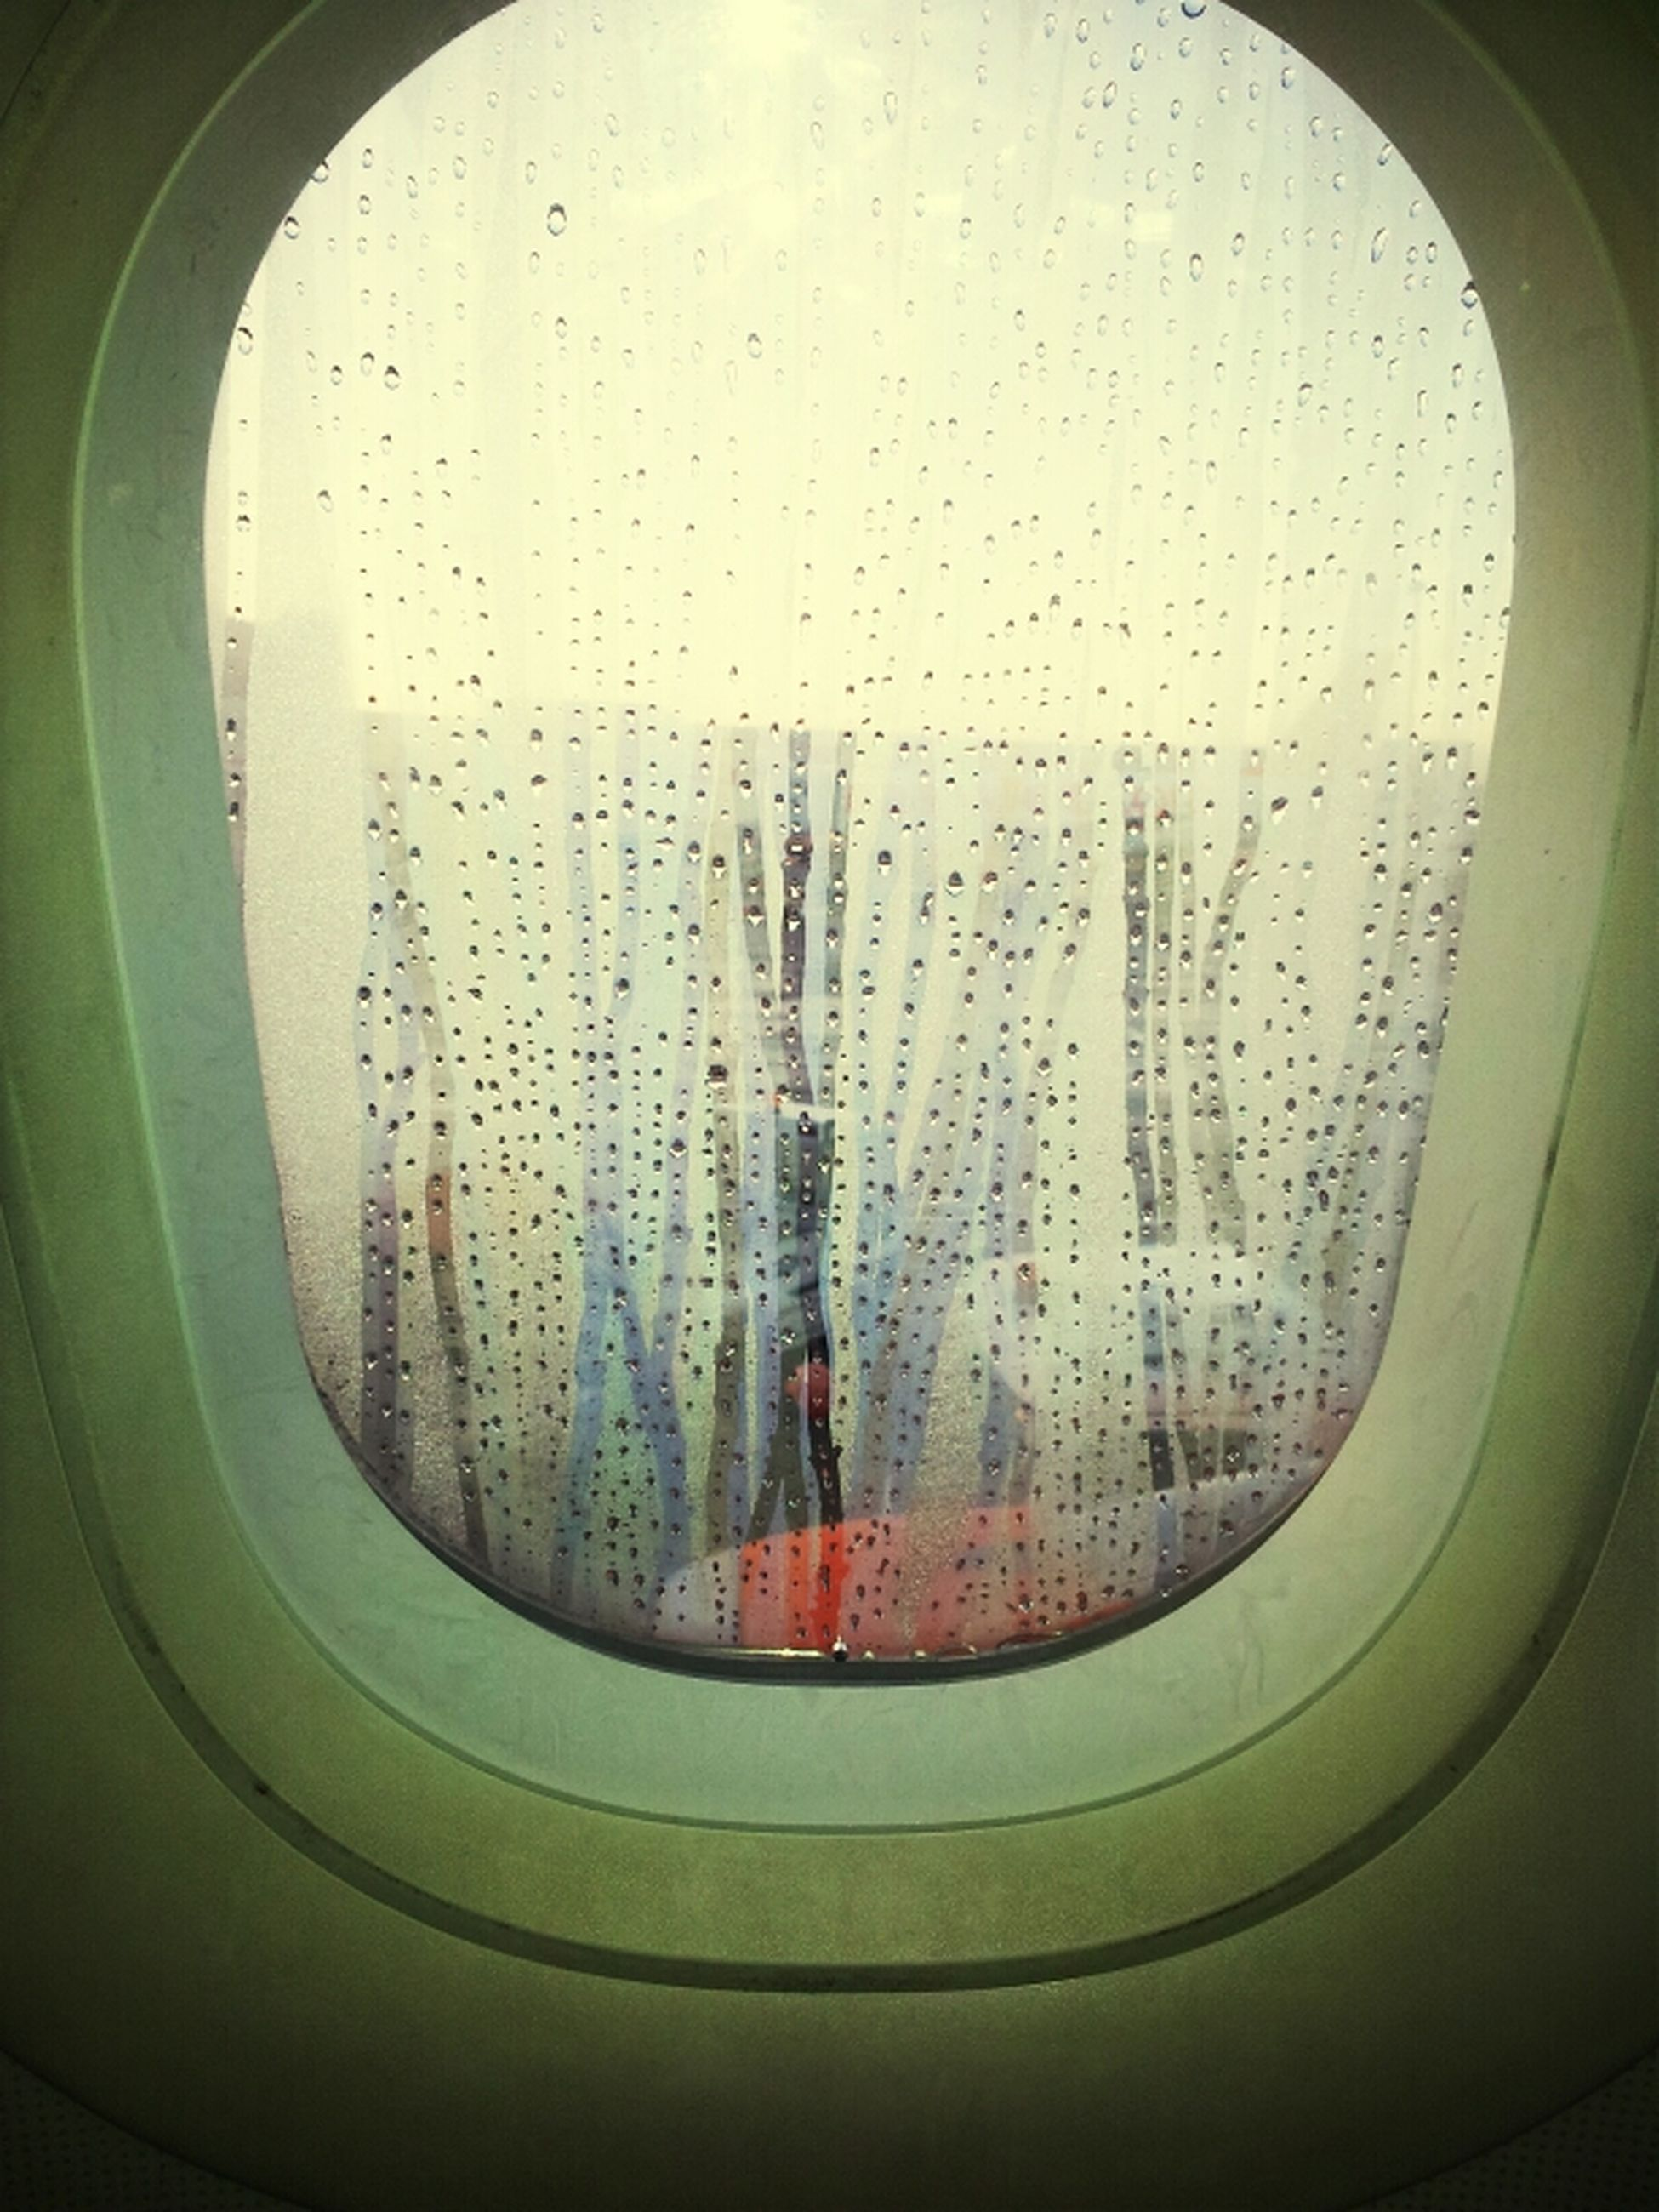 window, indoors, glass - material, transparent, airplane, vehicle interior, looking through window, transportation, air vehicle, mode of transport, glass, sky, built structure, architecture, travel, day, flying, no people, low angle view, part of